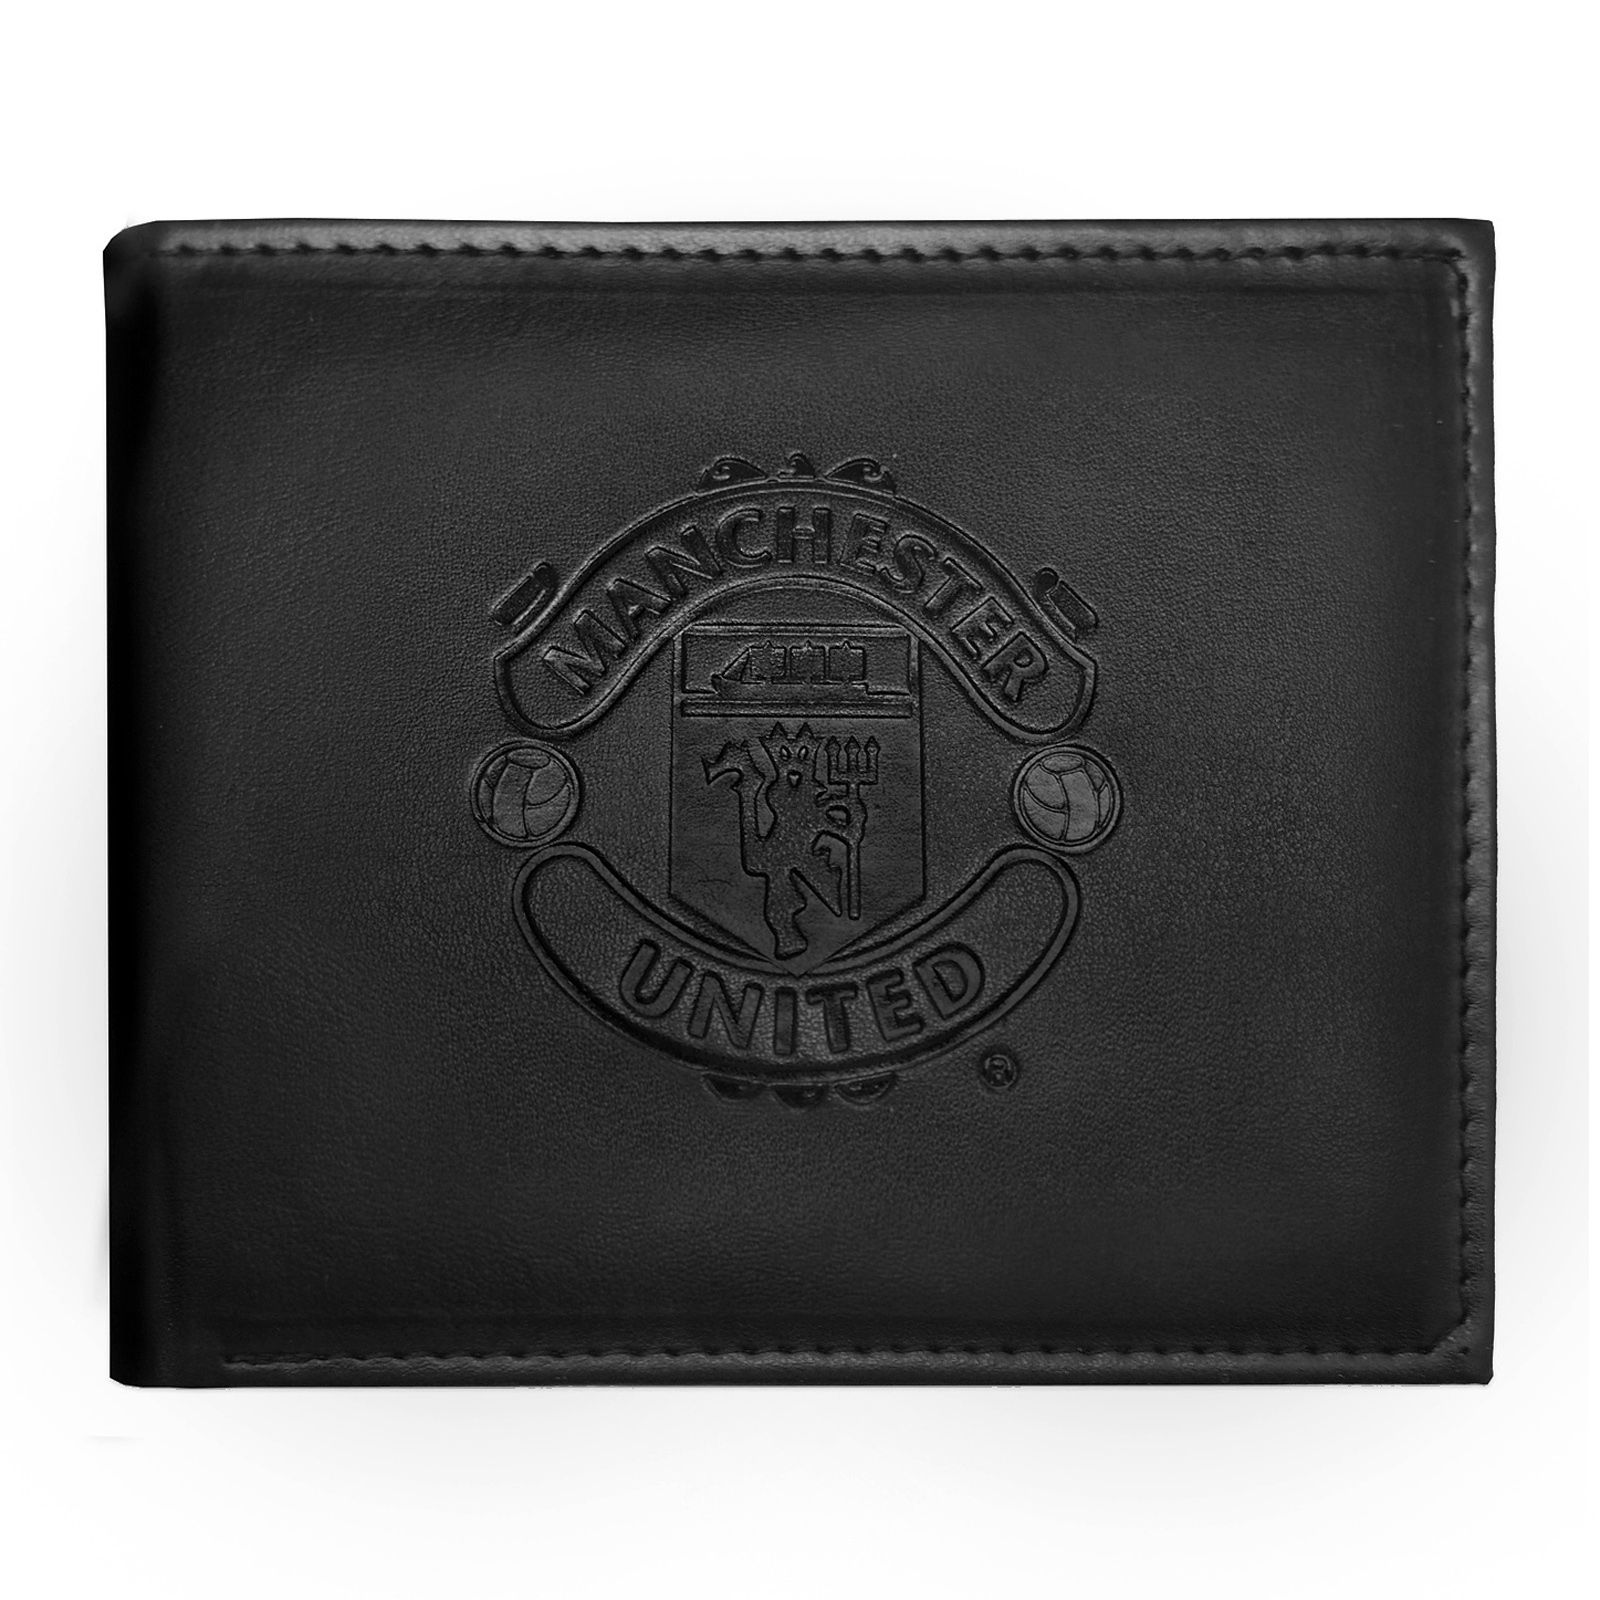 Manchester-United-FC-Official-Football-Gift-Embossed-Crest-Wallet